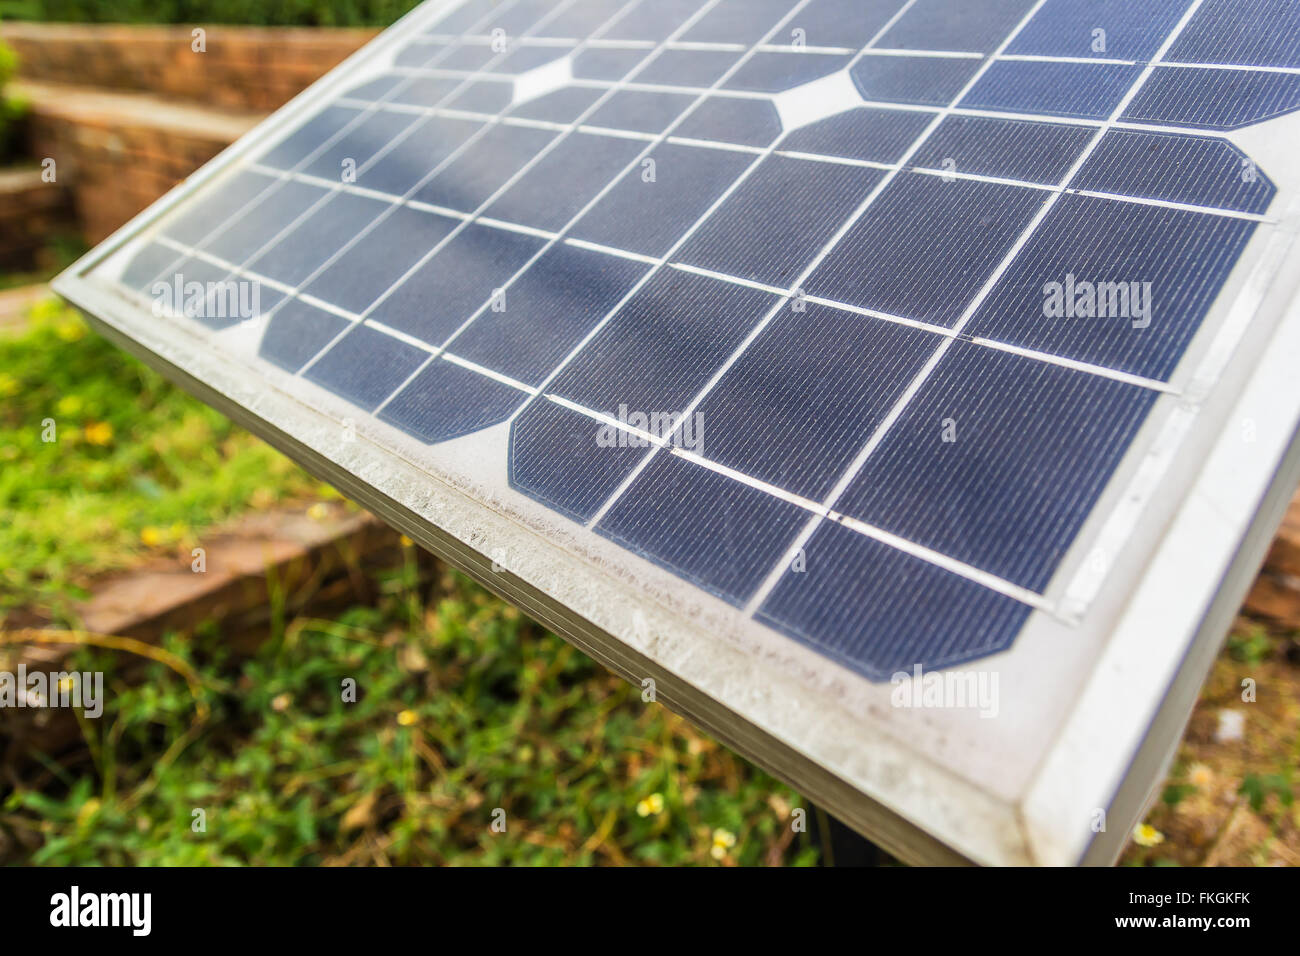 Close up shot Solar panels in a photovoltaic power plant - Stock Image